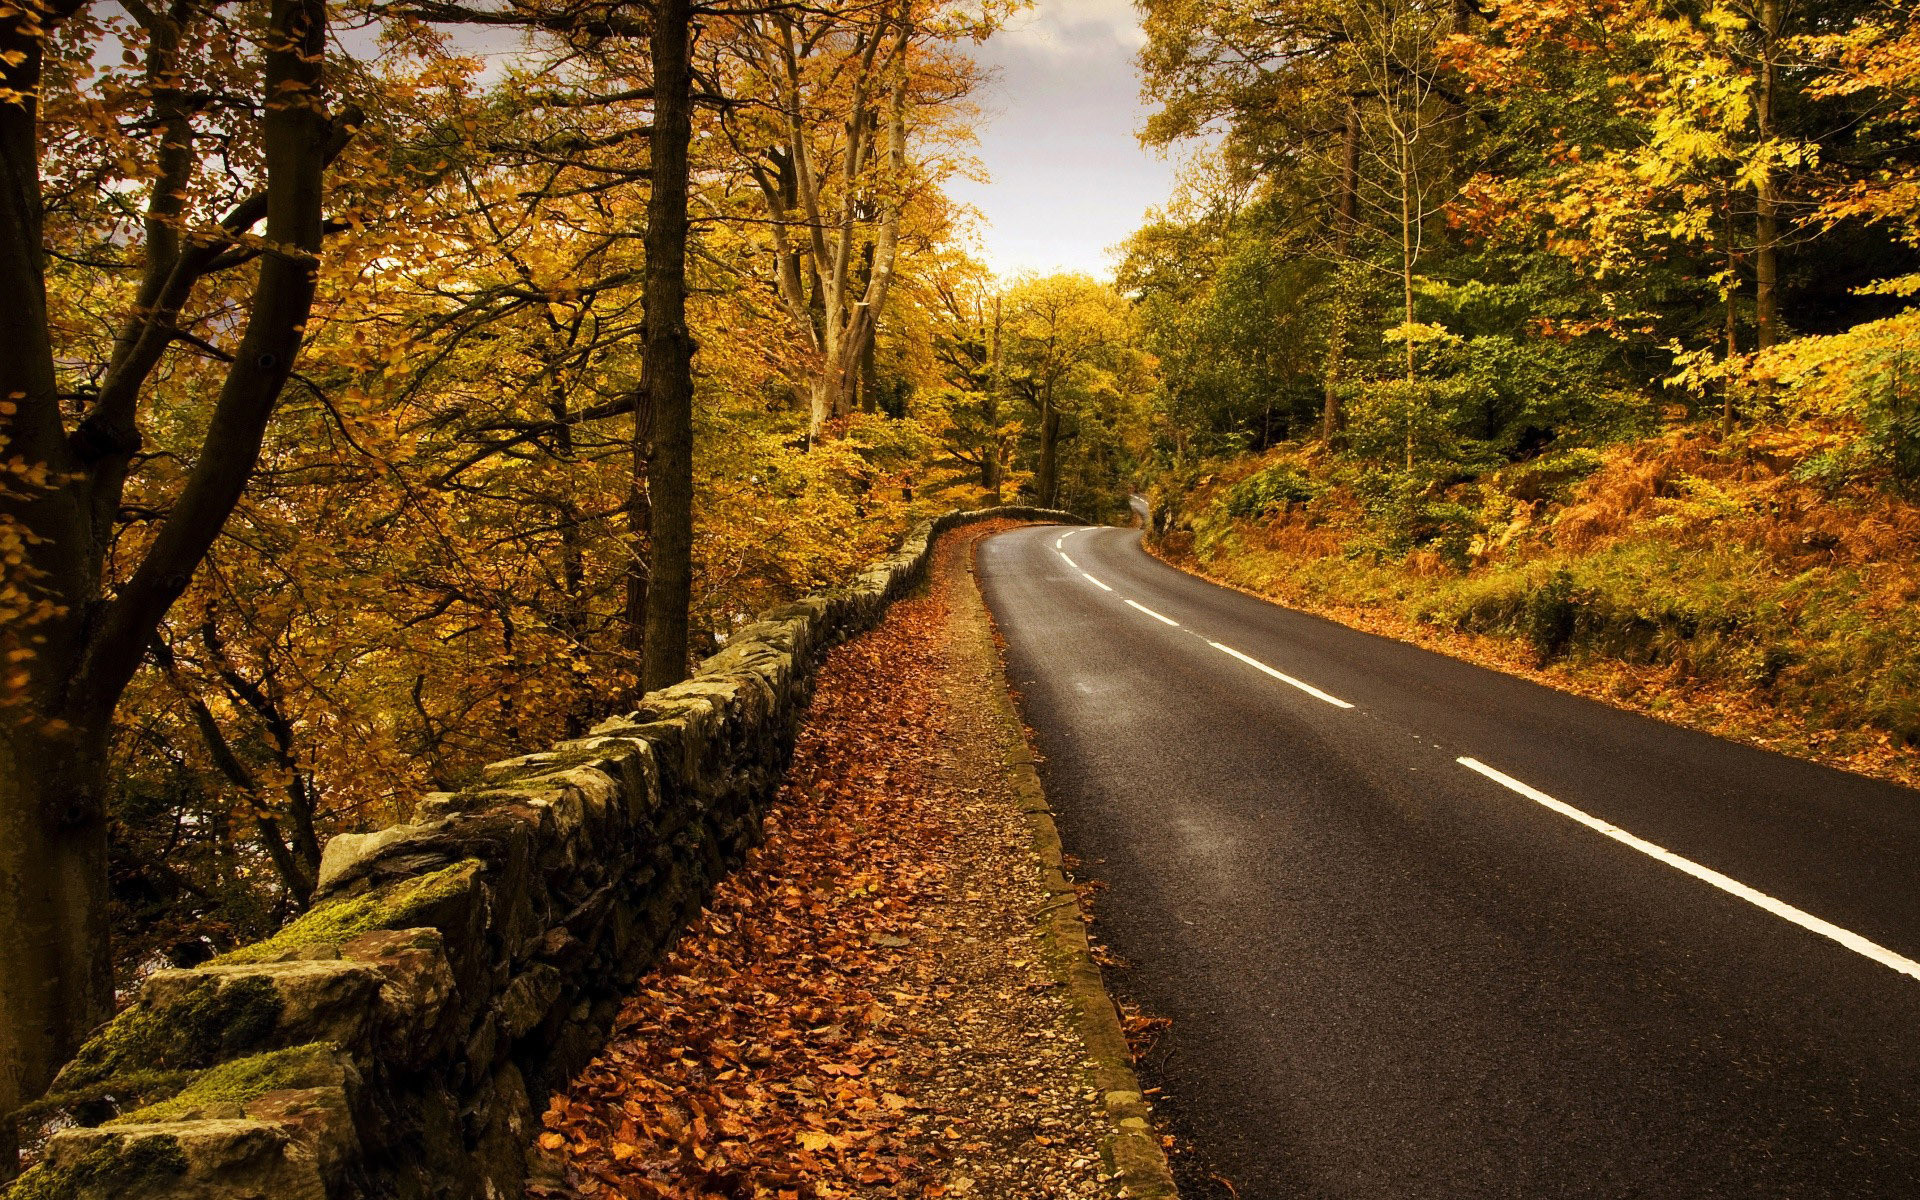 1920x1200 Mountain road in the fall wallpaper - 753657